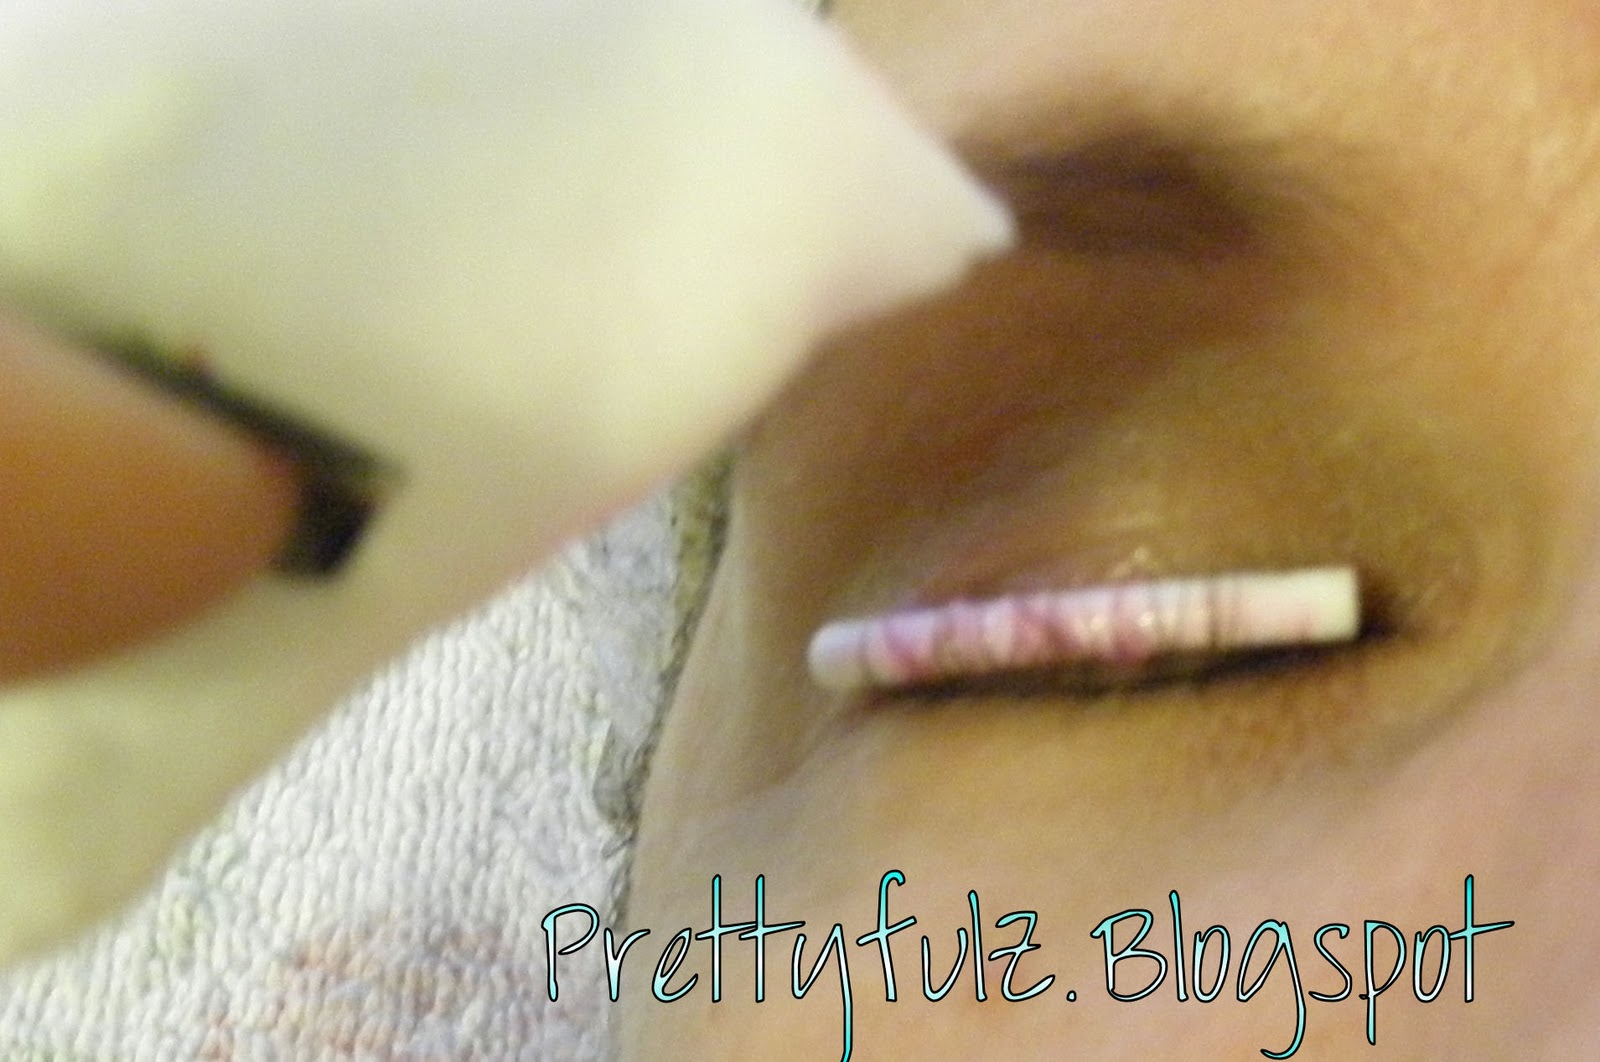 Prettyfulz how to perm your eyelashes at home diy solutioingenieria Choice Image